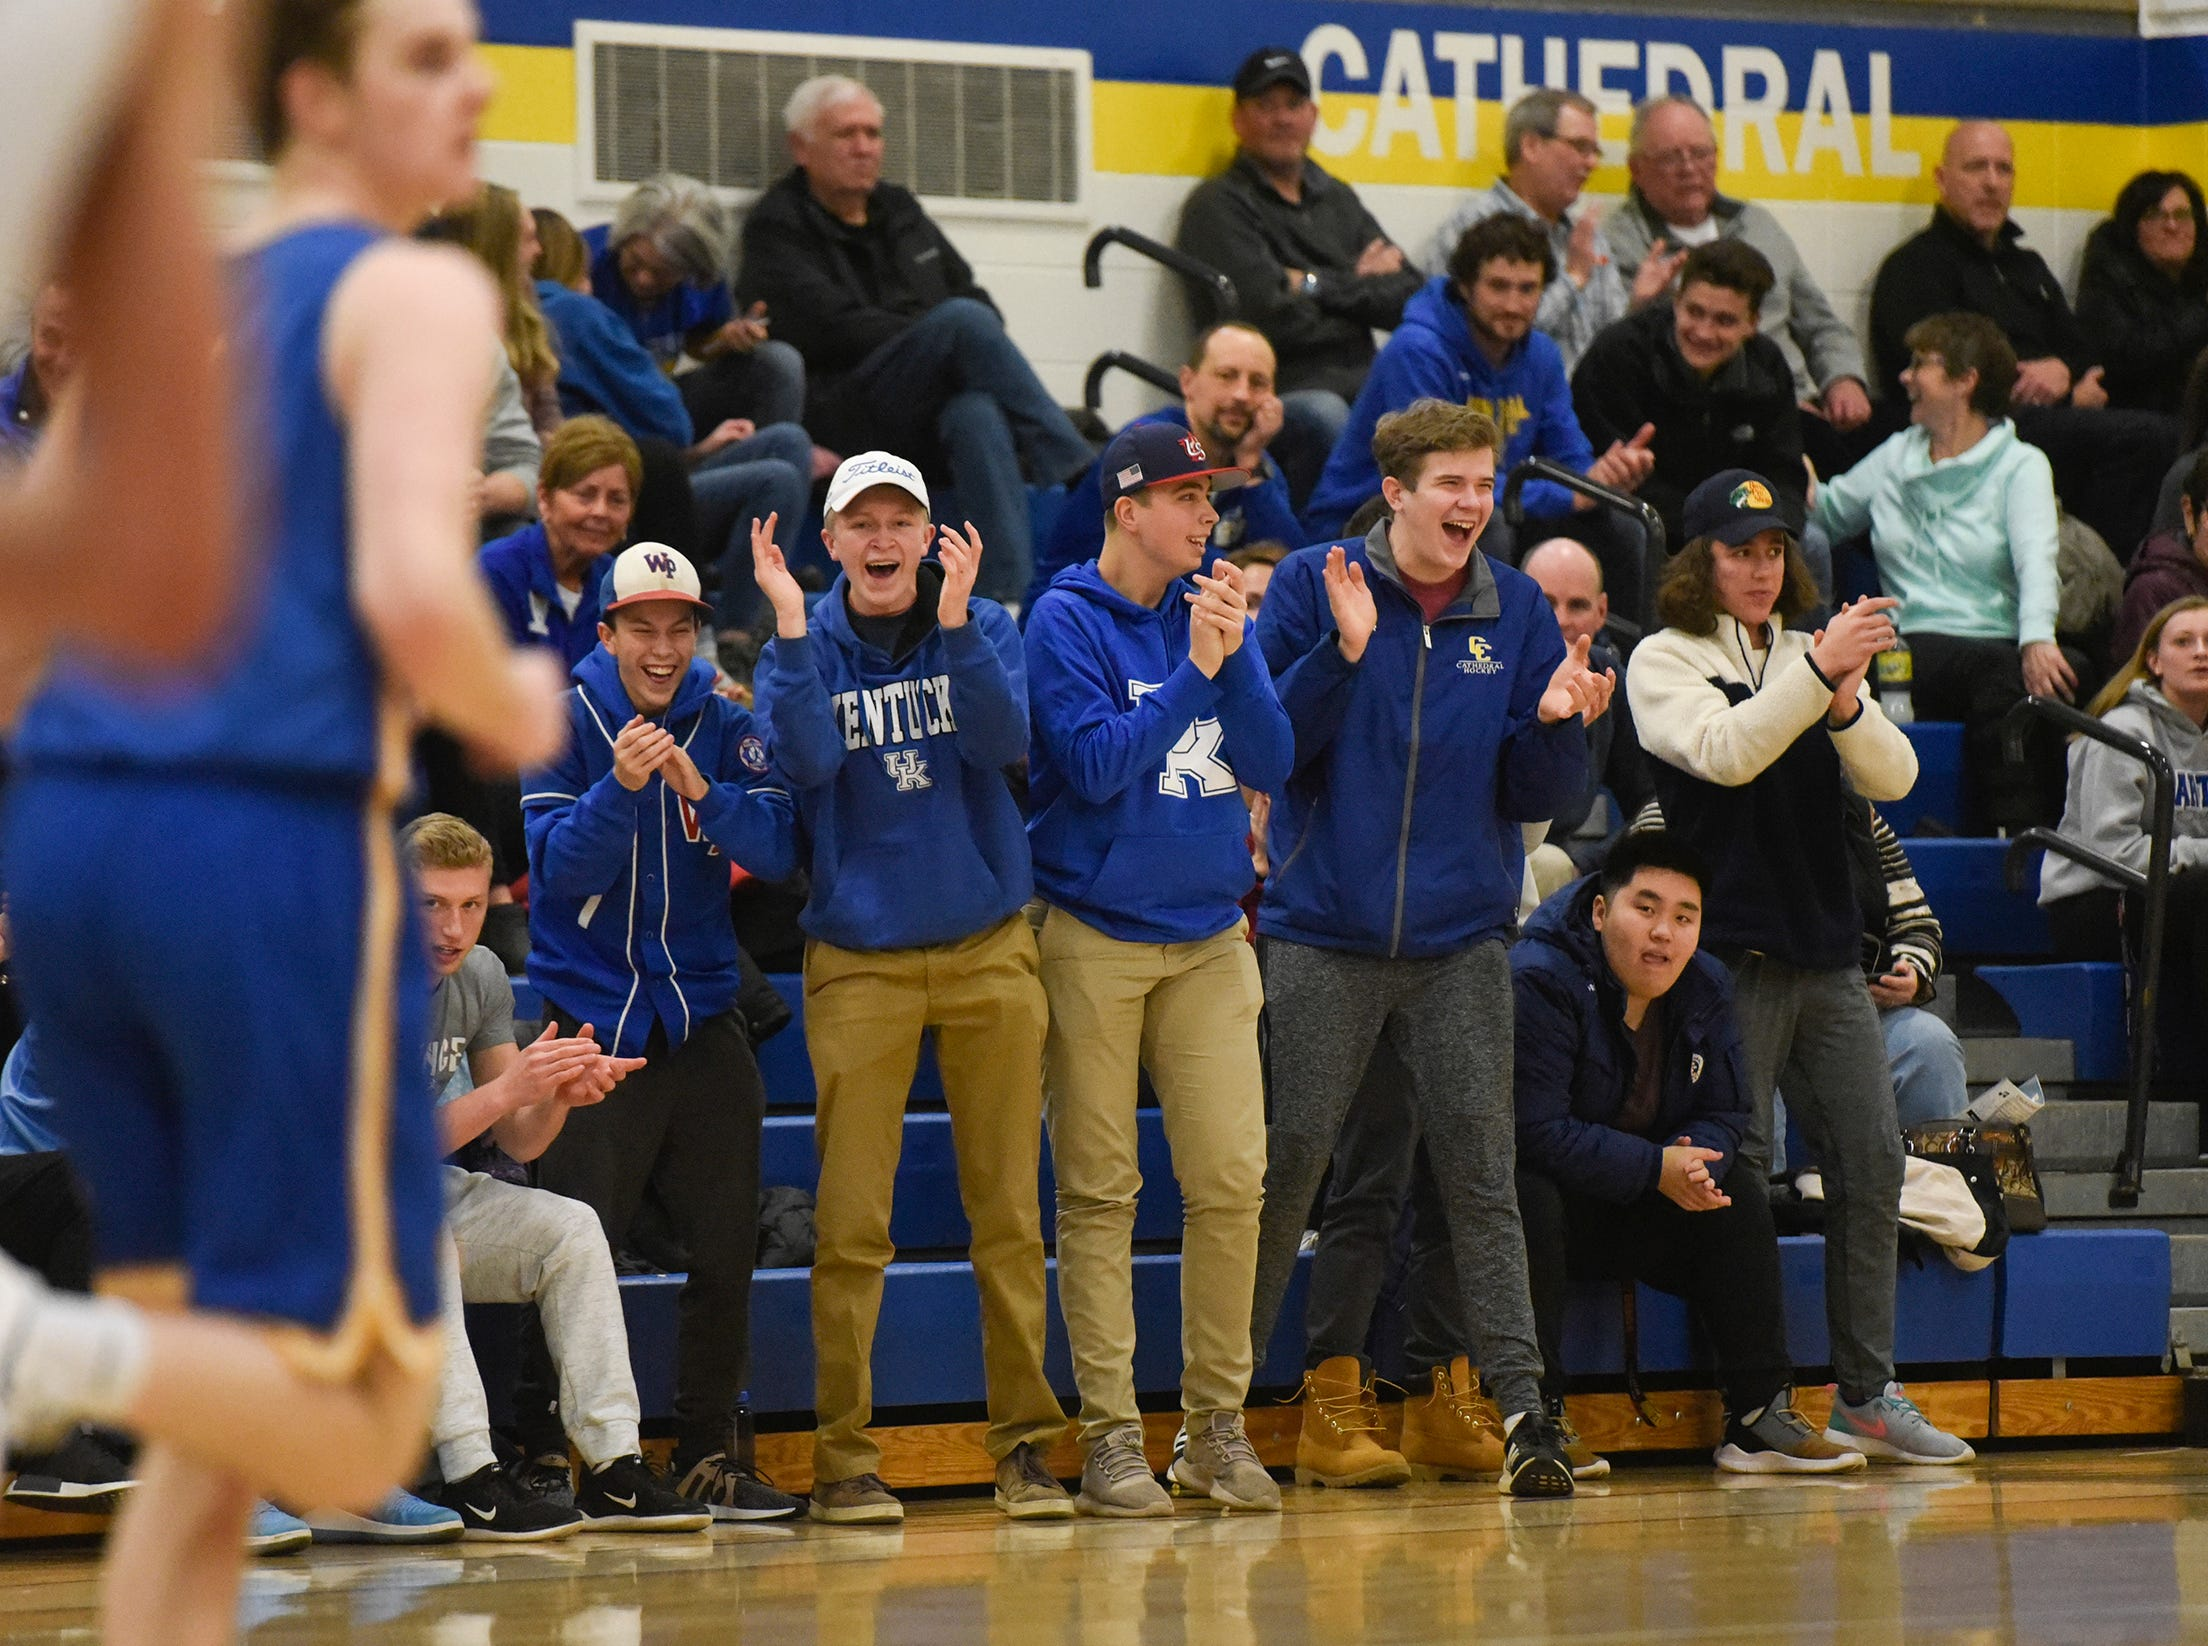 Fans cheer for their team during the game Tuesday, Jan. 8, at Cathedral High School in St. Cloud.